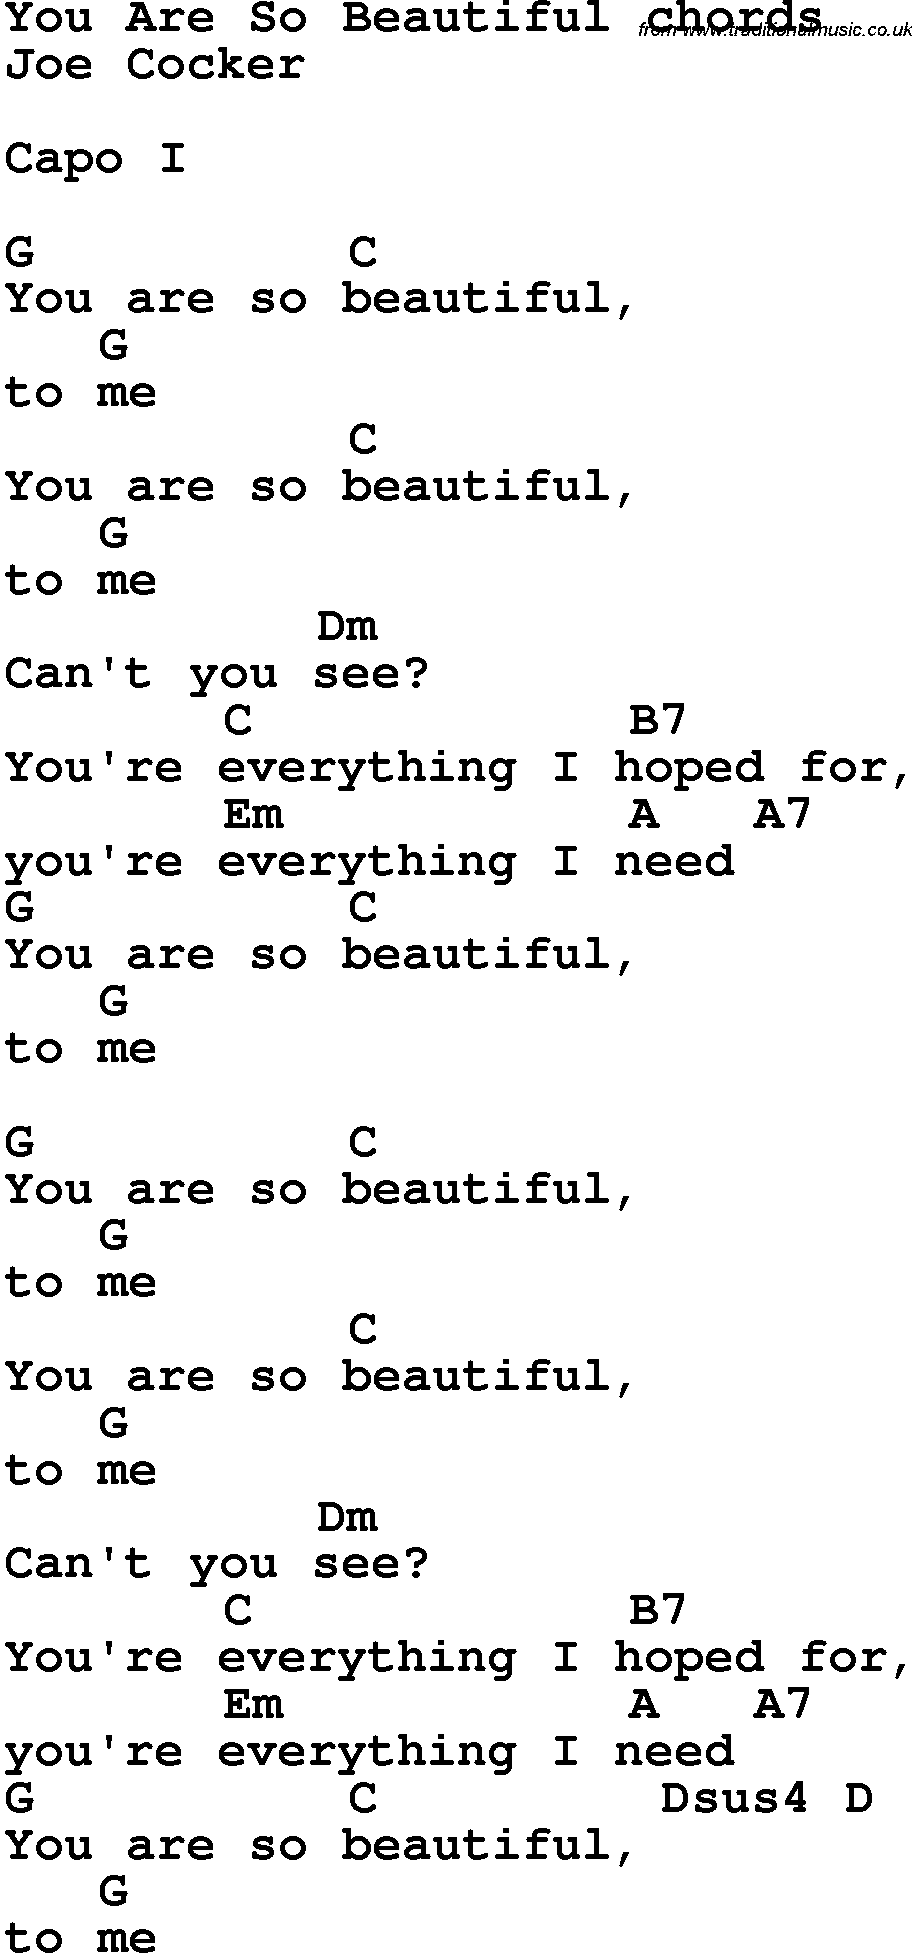 Song Lyrics With Guitar Chords For You Are So Beautiful